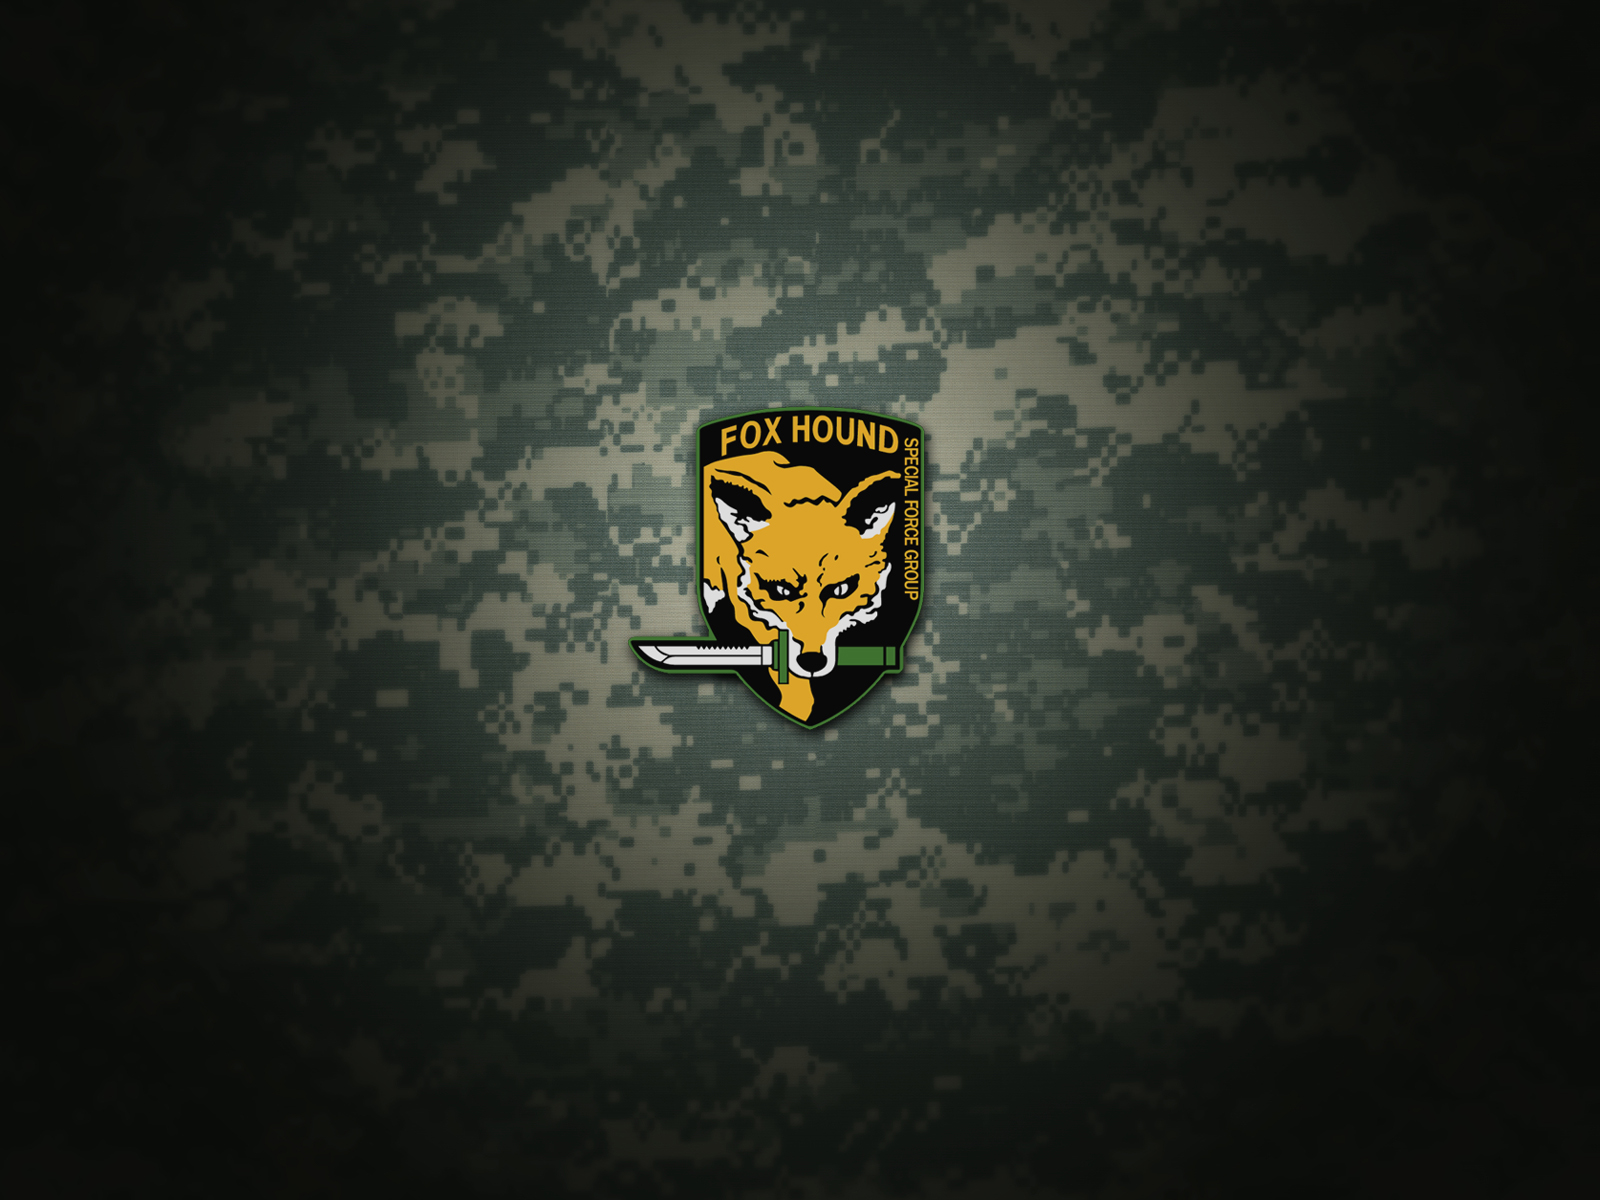 FOXHOUND Wallpaper And Background Image